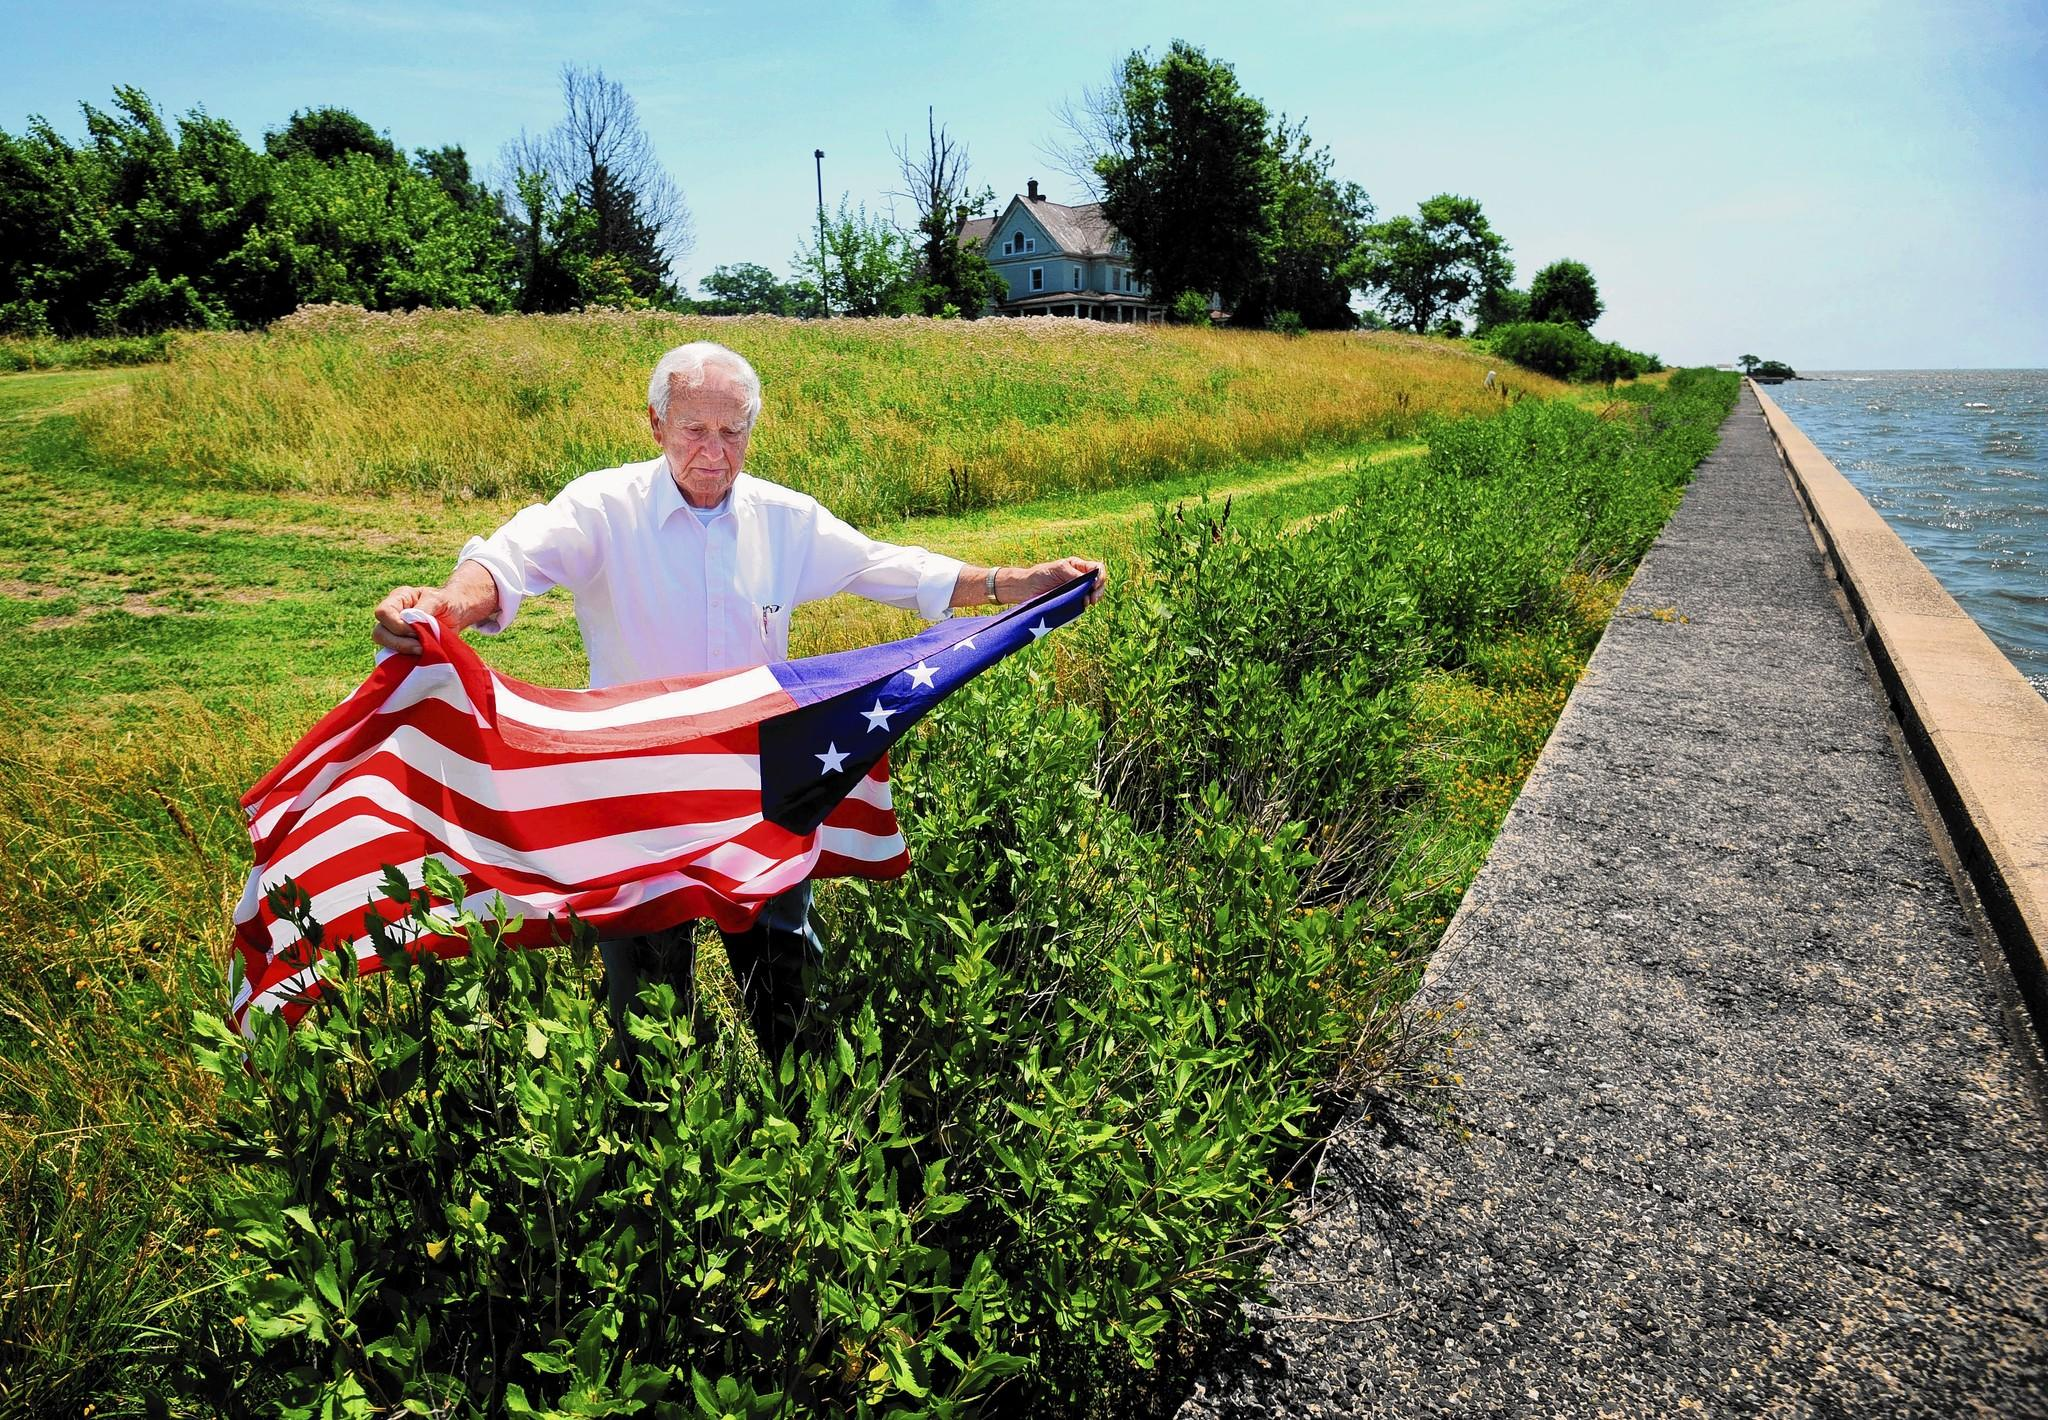 Alfred Clasing is one of the veterans that paid a deposit to a developer for a veterans' housing development on Fort Howard that never materialized. Clasing holds a 15 star American flag on Ft. Howard near the Chesapeake Bay.